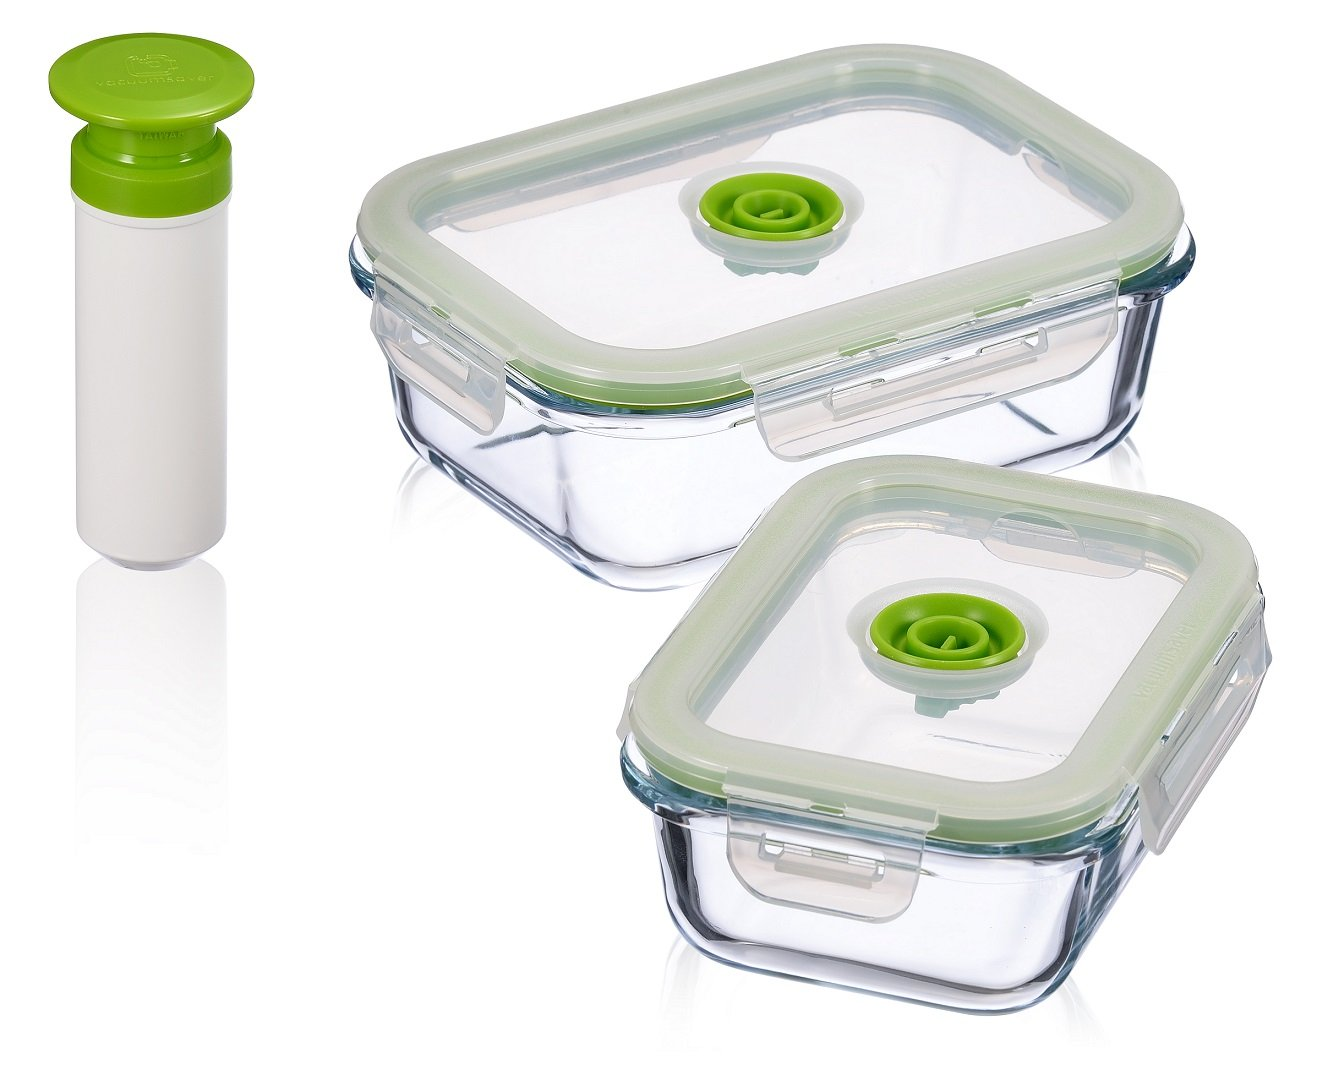 Vacuum Seal Food Storage Containers - Deep Freezer Food Storage Sealer - Hand Held Vacuum Food System - Small - Rectangle - 5Pc - Green